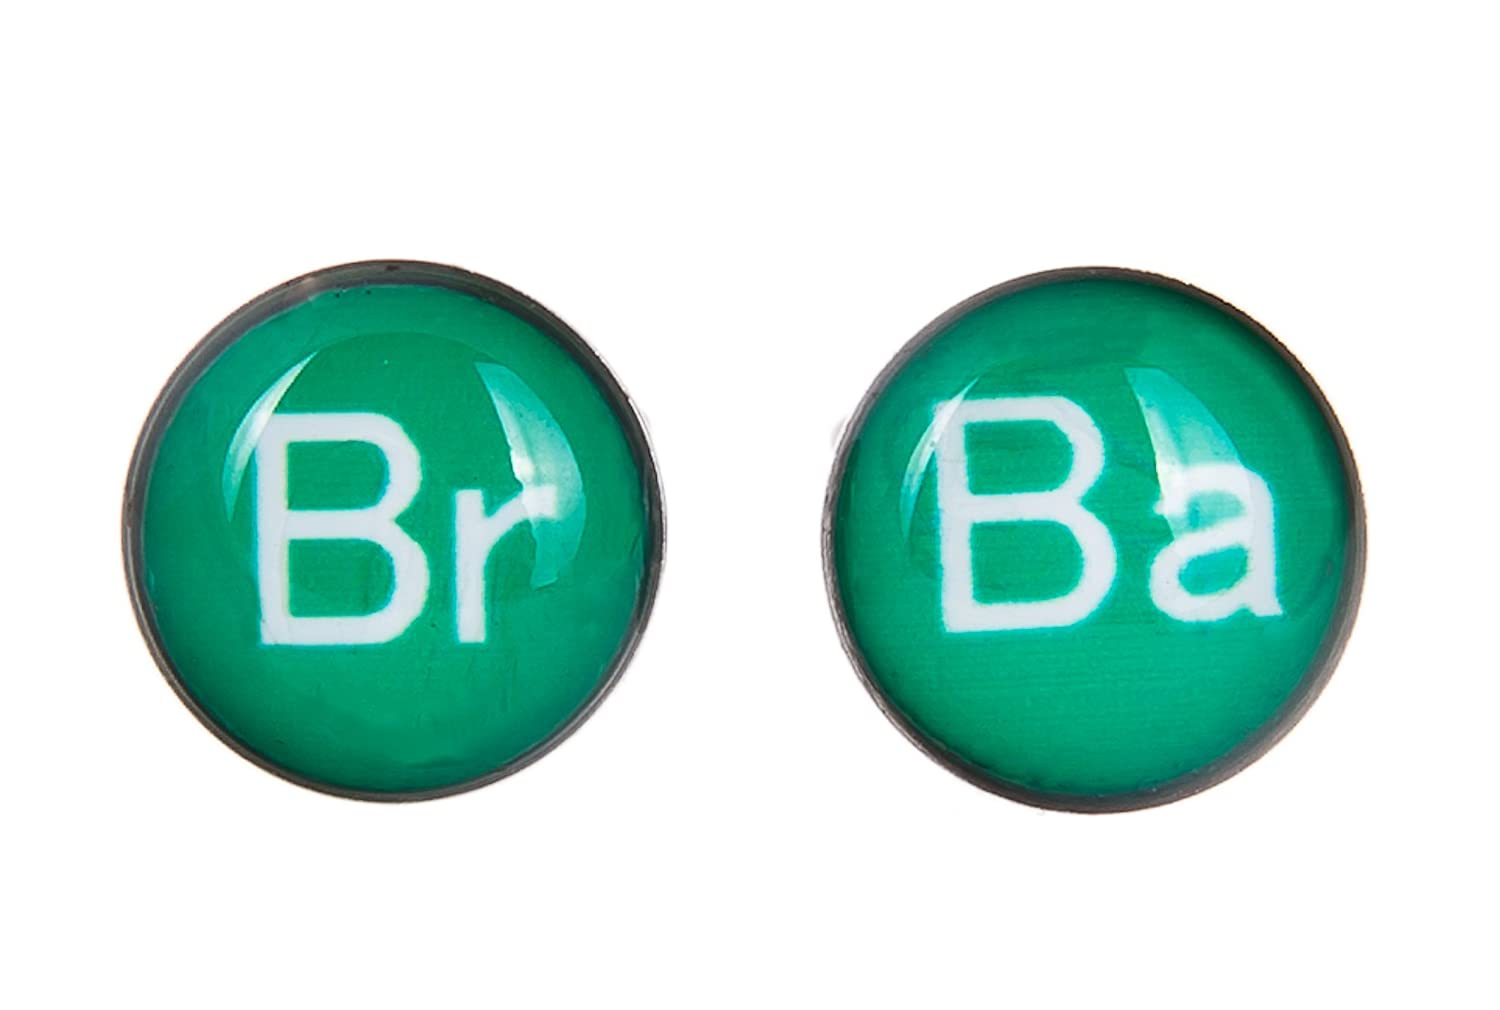 Amazon tv show inspired br ba periodic table symbols 8mm amazon tv show inspired br ba periodic table symbols 8mm stainless steel stud earrings jewelry urtaz Image collections